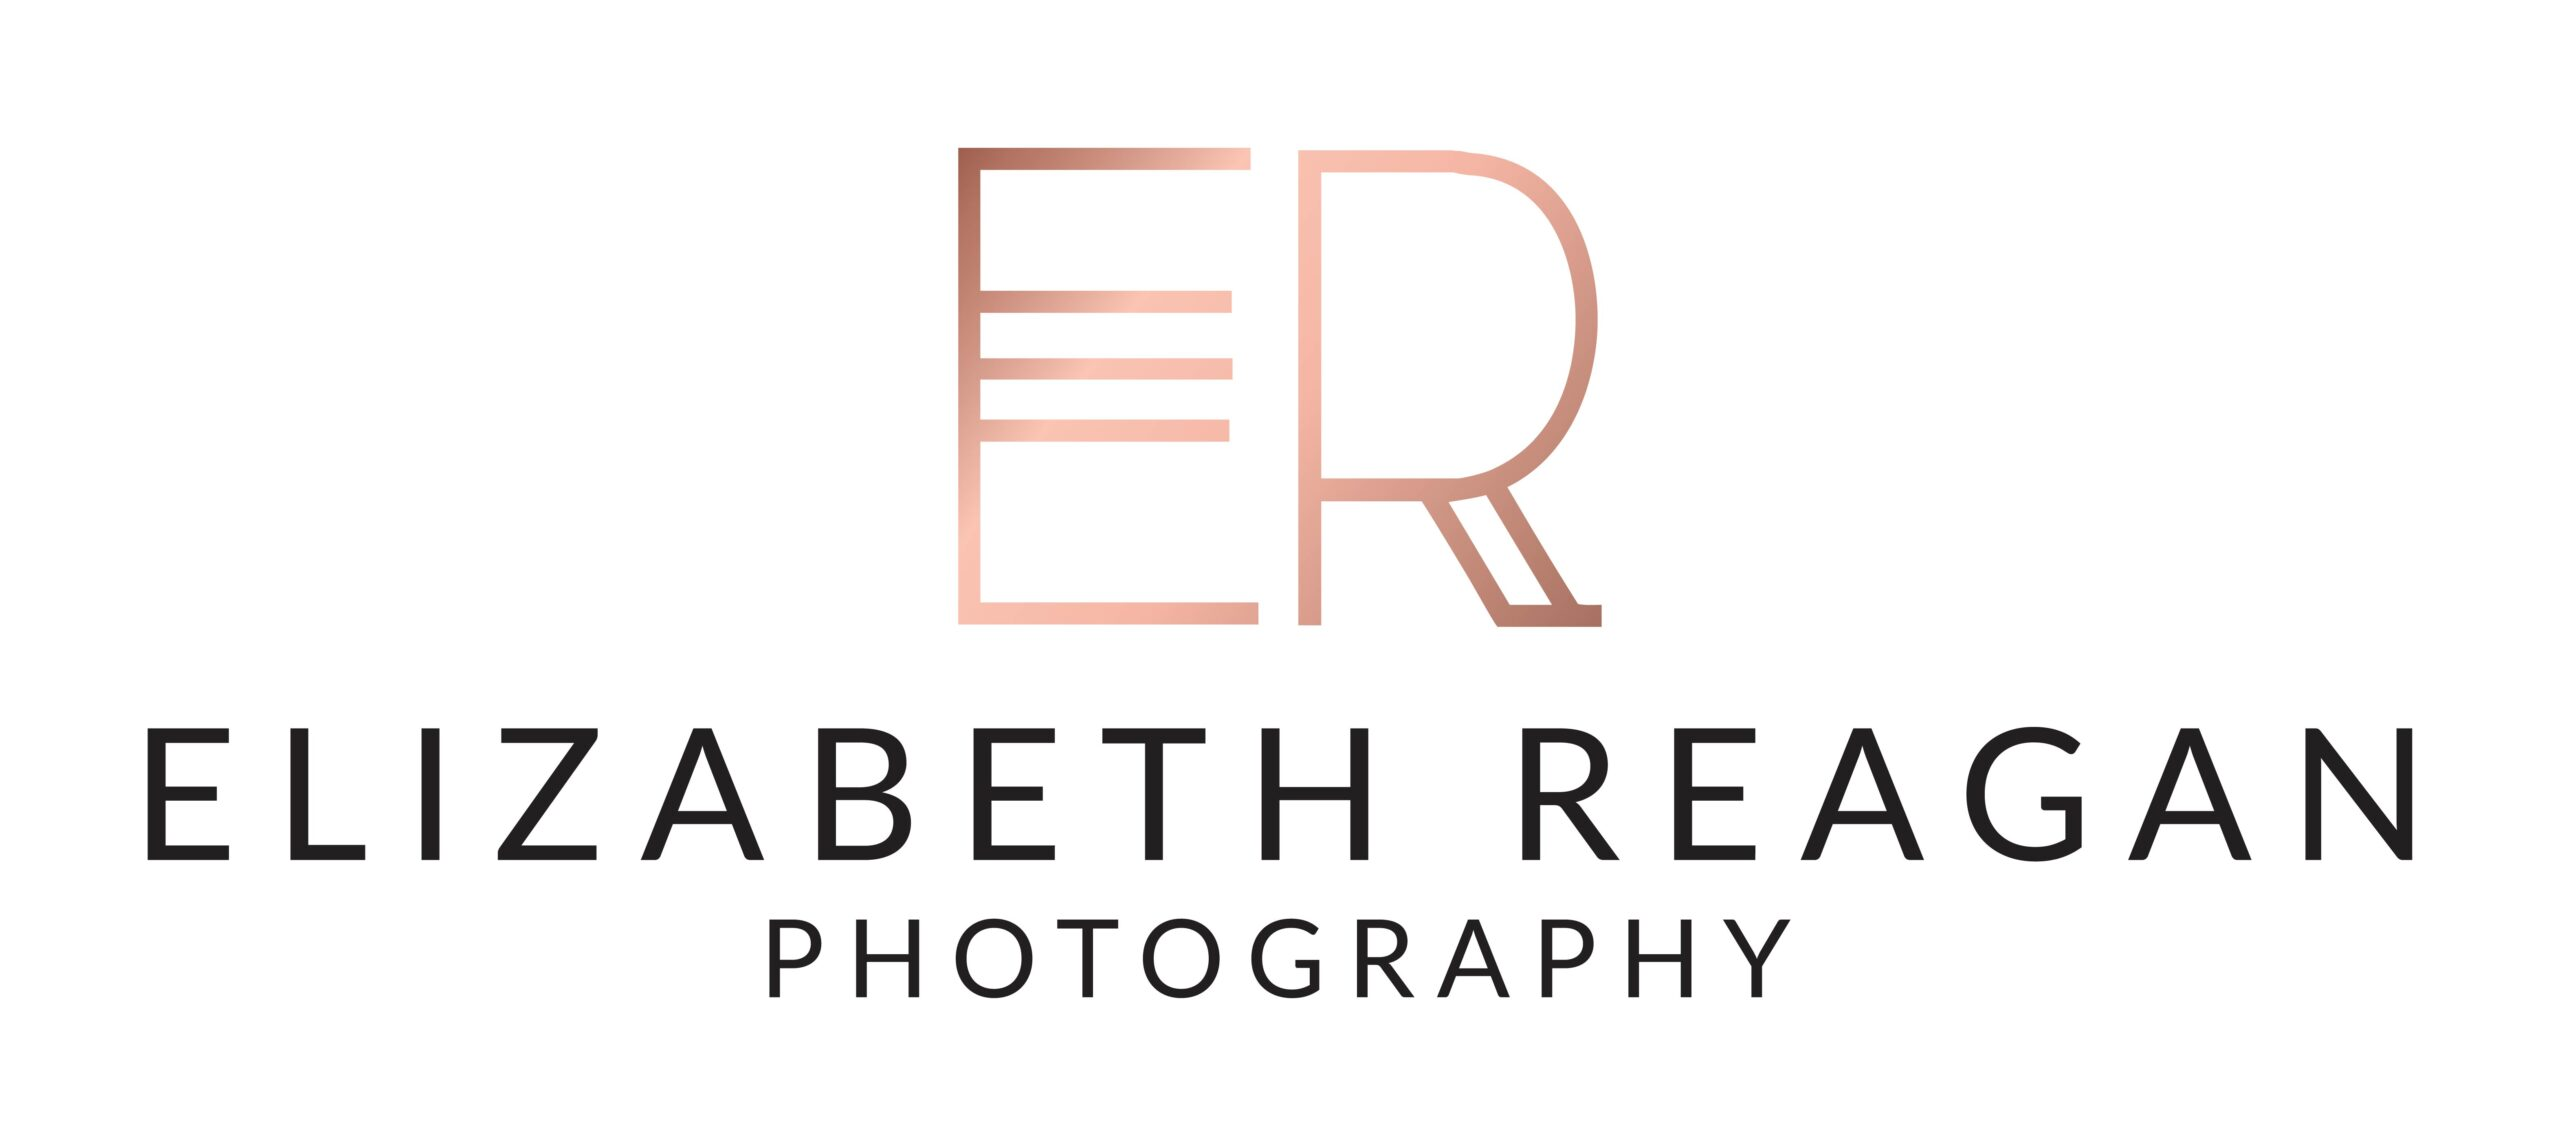 Elizabeth Reagan Photography